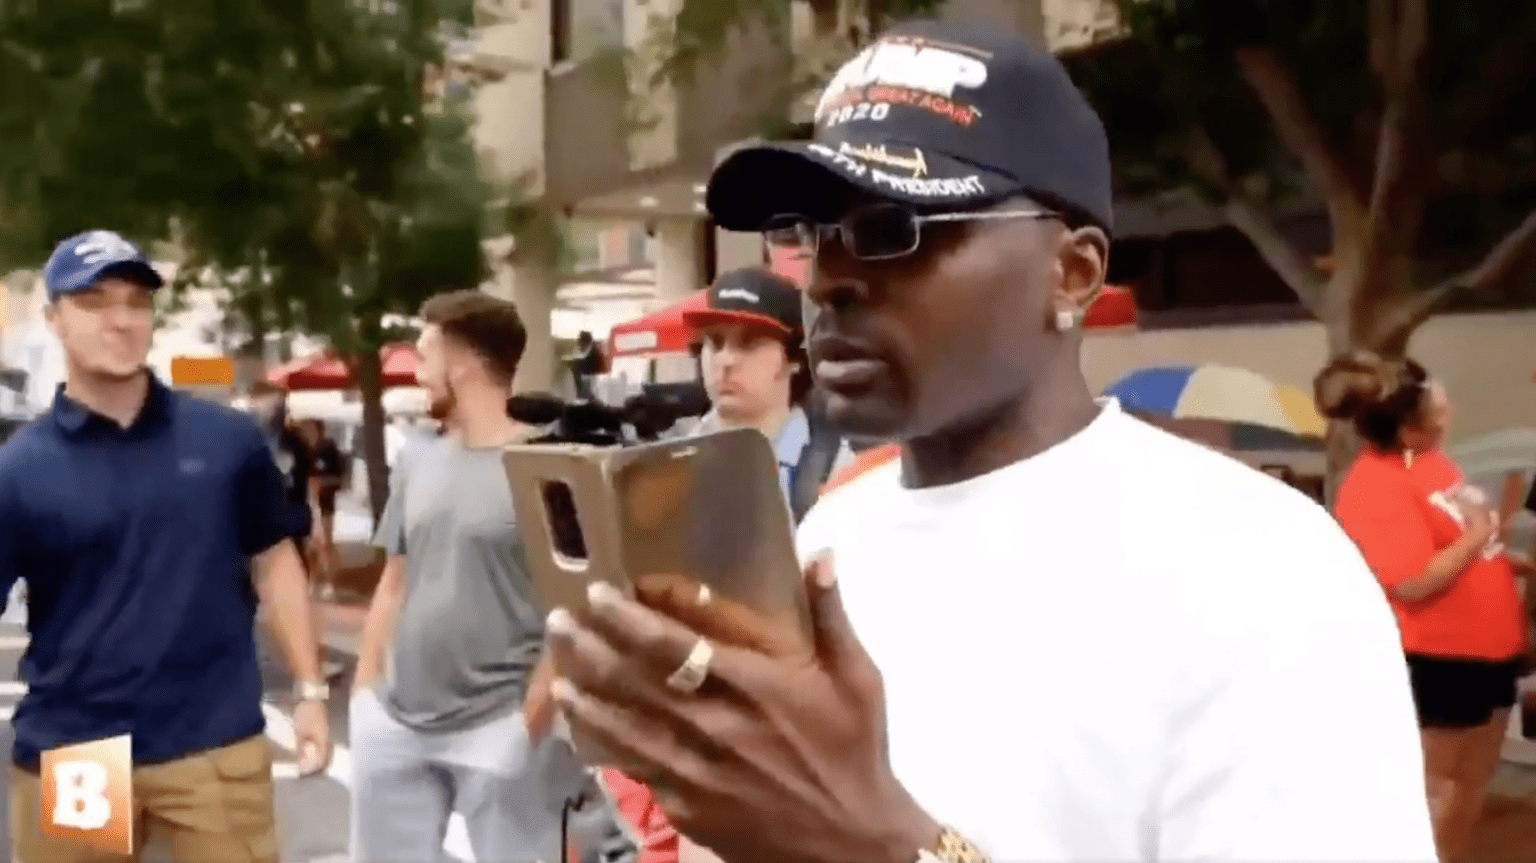 """Protester blown away by seeing black man in pro-Trump hat at rally: """"Hell yeah - straight from Chicago - all Trump."""""""